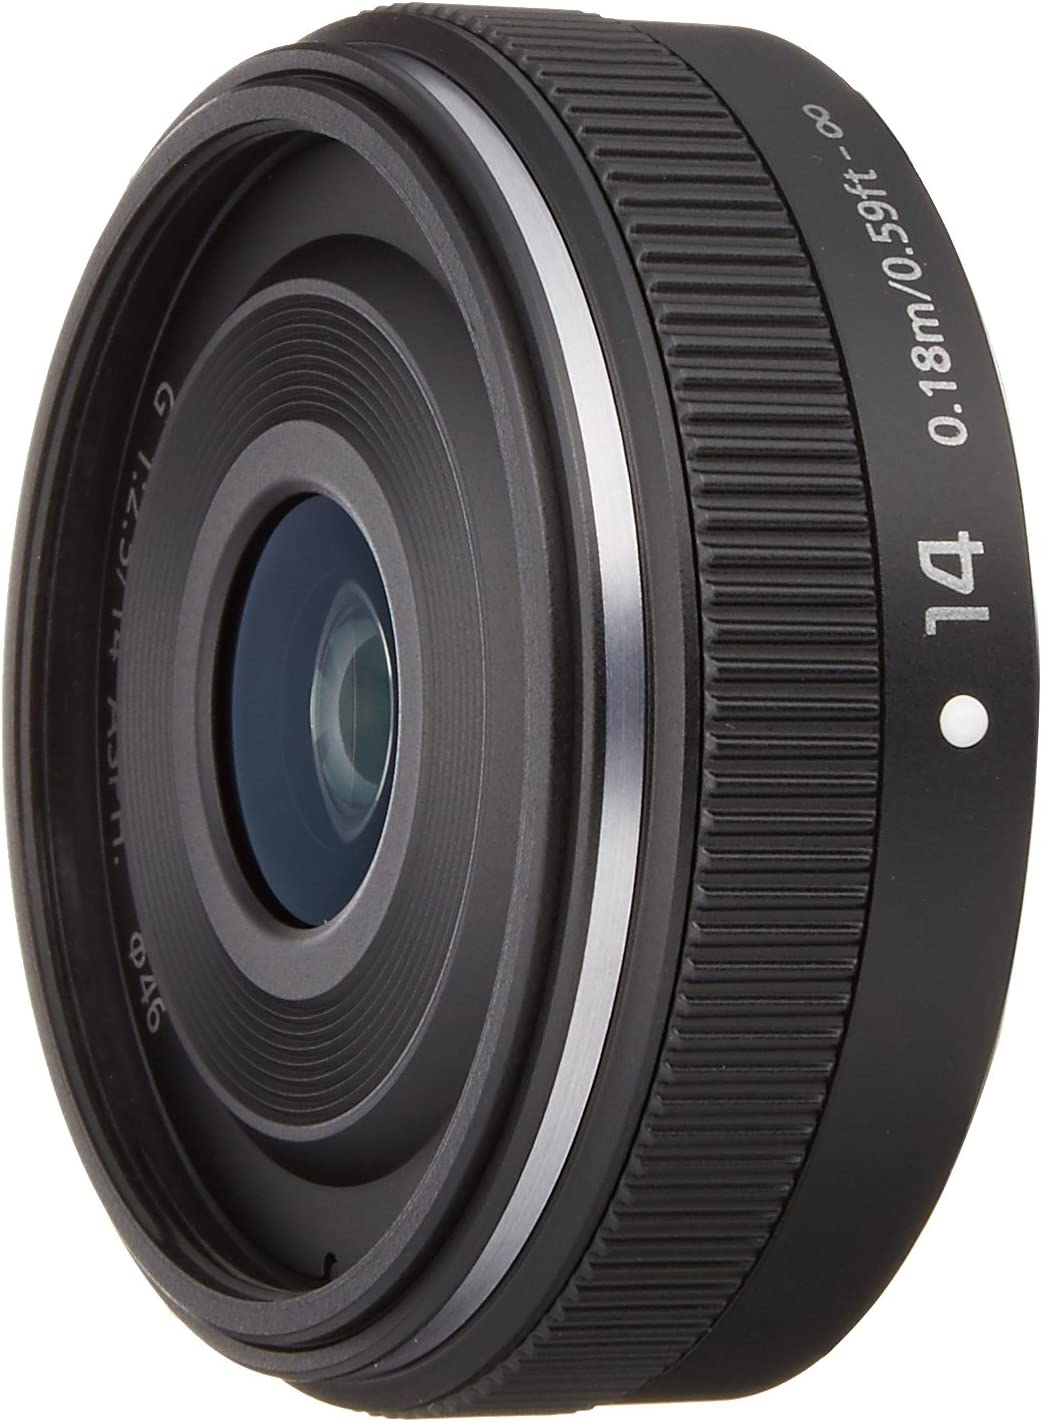 Panasonic Lumix G 14mm f//2.5 II Aspherical II Lens for Micro Four Thirds